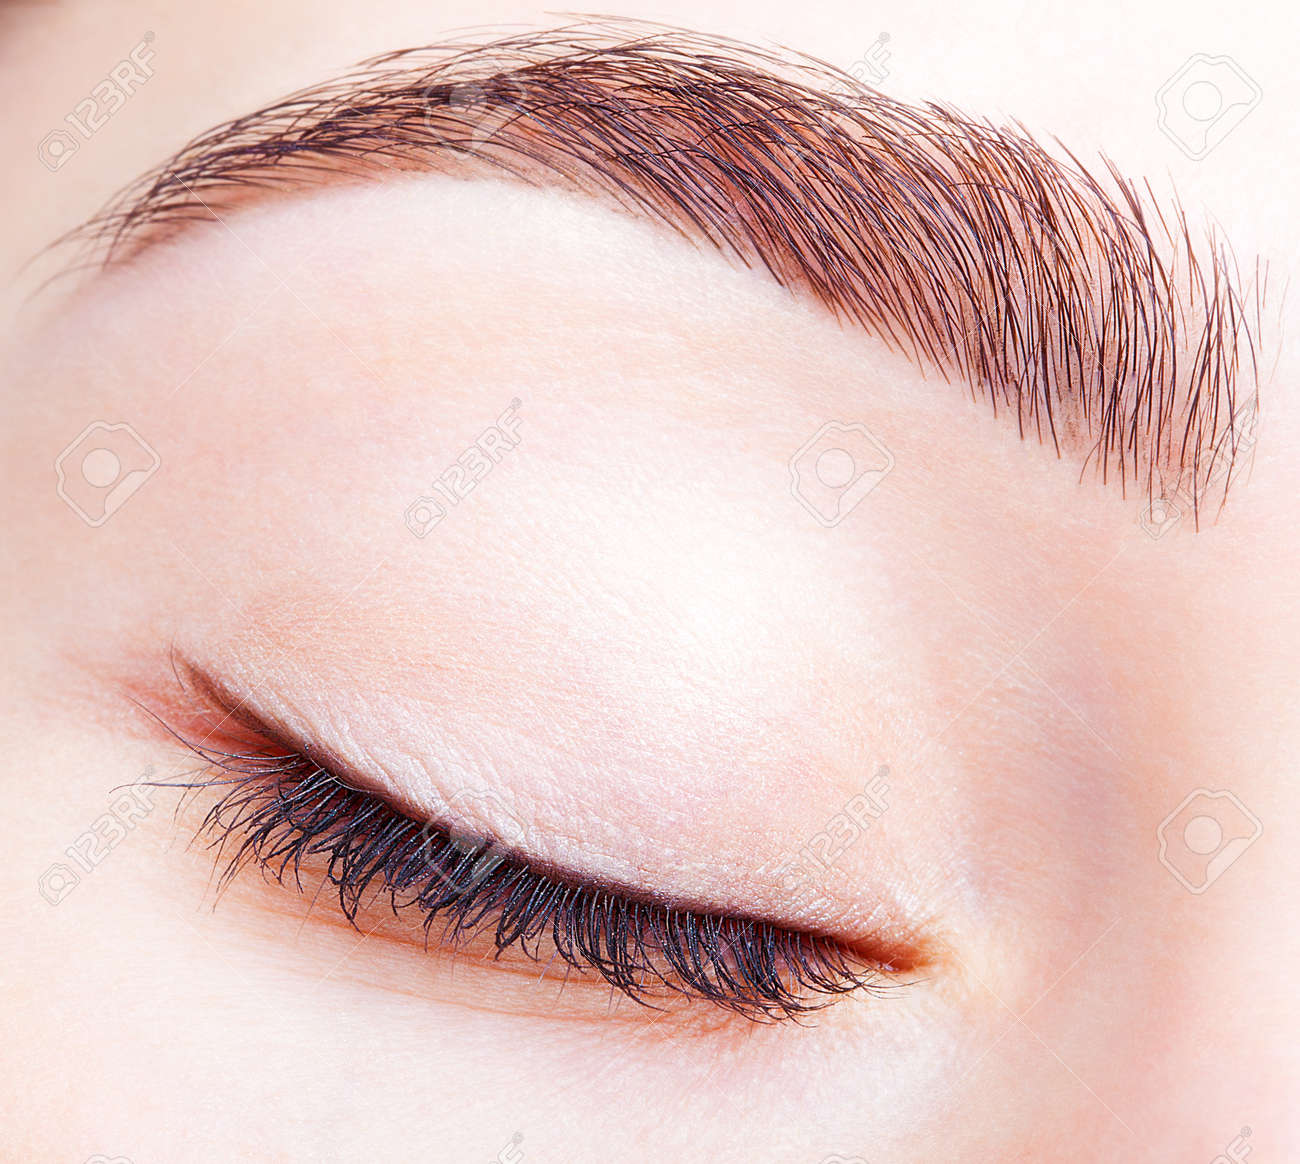 Closeup Shot Of Female Closed Eye And Brows With Day Makeup Stock